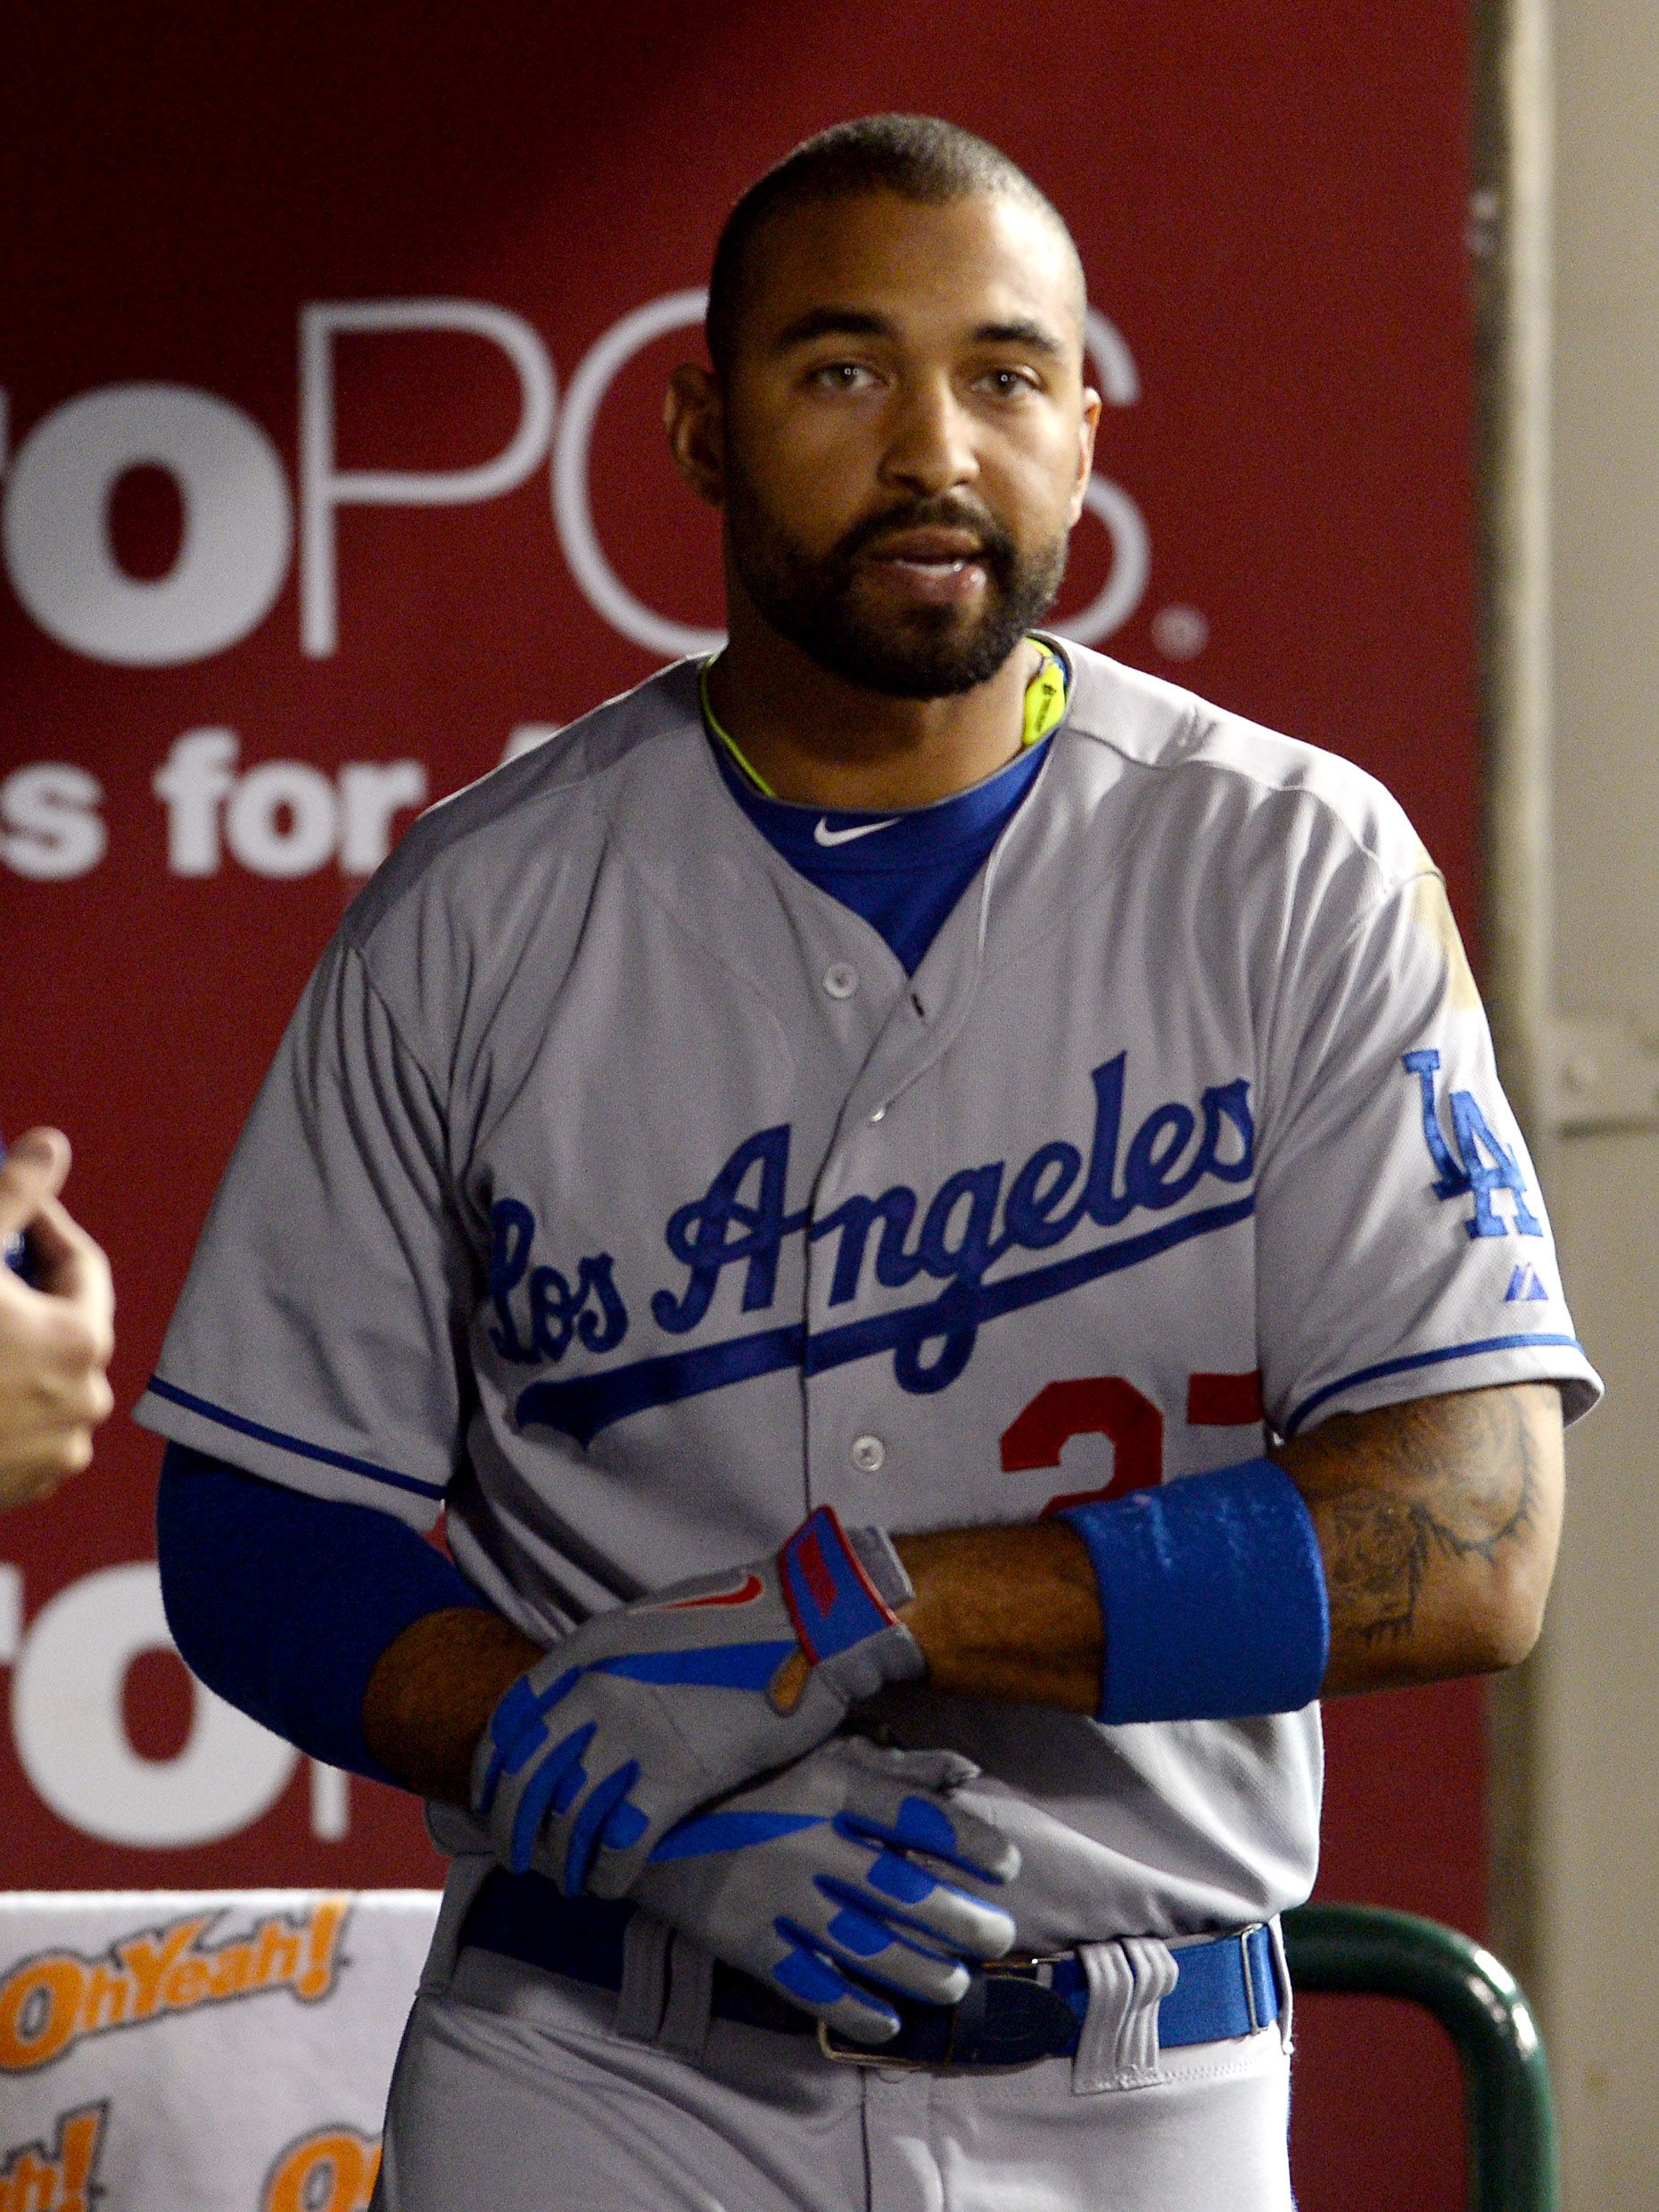 The Los Angeles Dodgers have announced that allstar